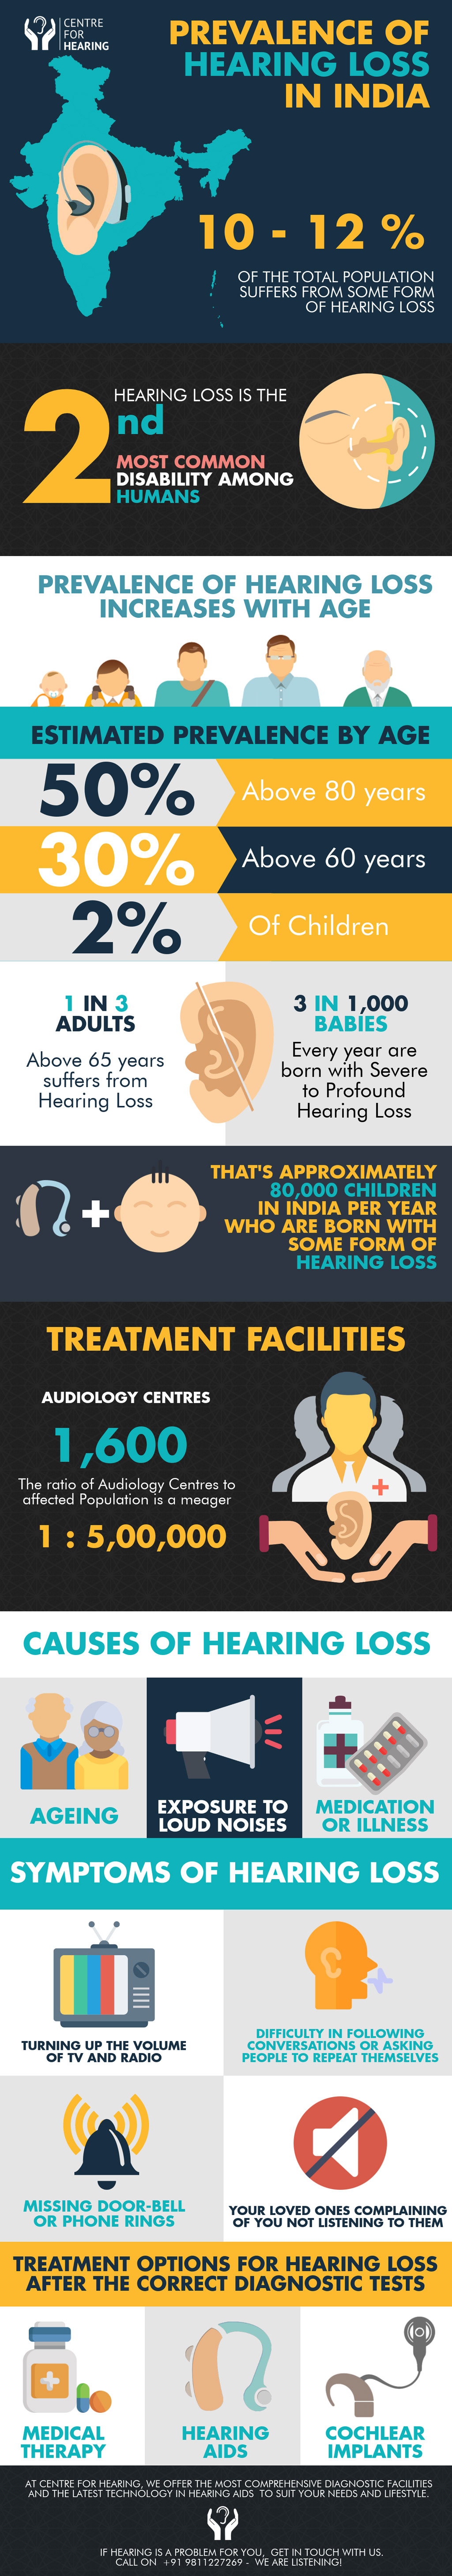 Prevalence-of-Hearing-Loss-In-India